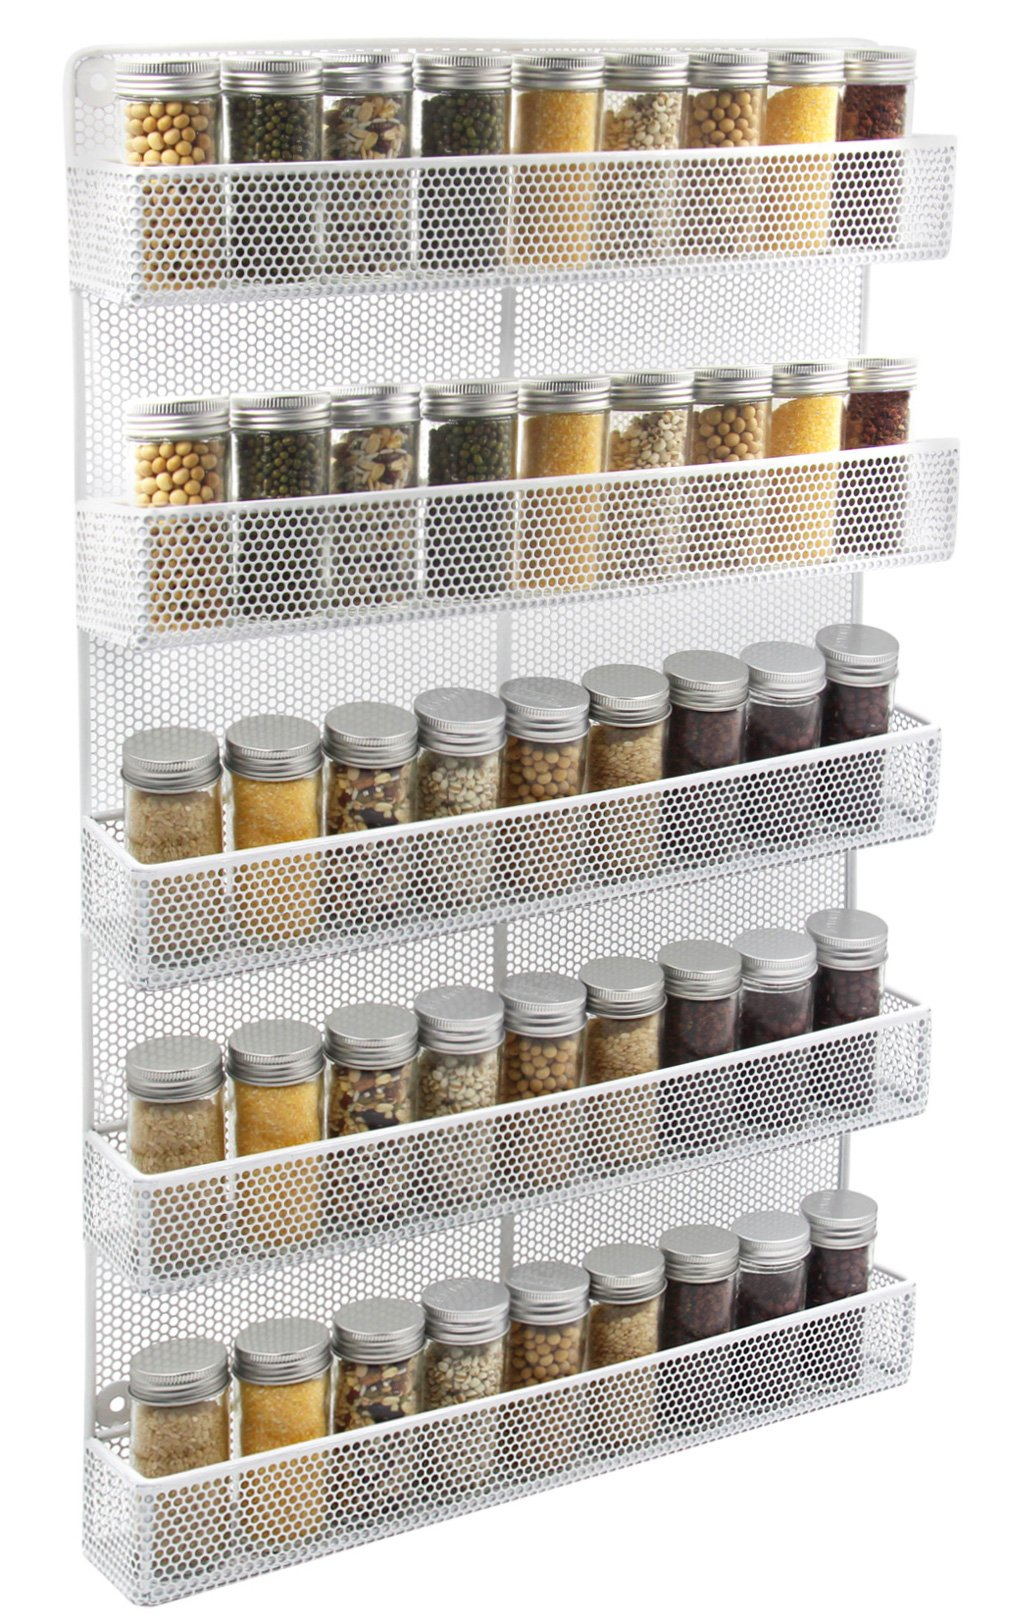 ESYLIFE 5 Tier Wall Mount Spice Rack Organizer Kitchen Spice Storage Shelf - Made of Sturdy Punching Net, White by Esy-Life